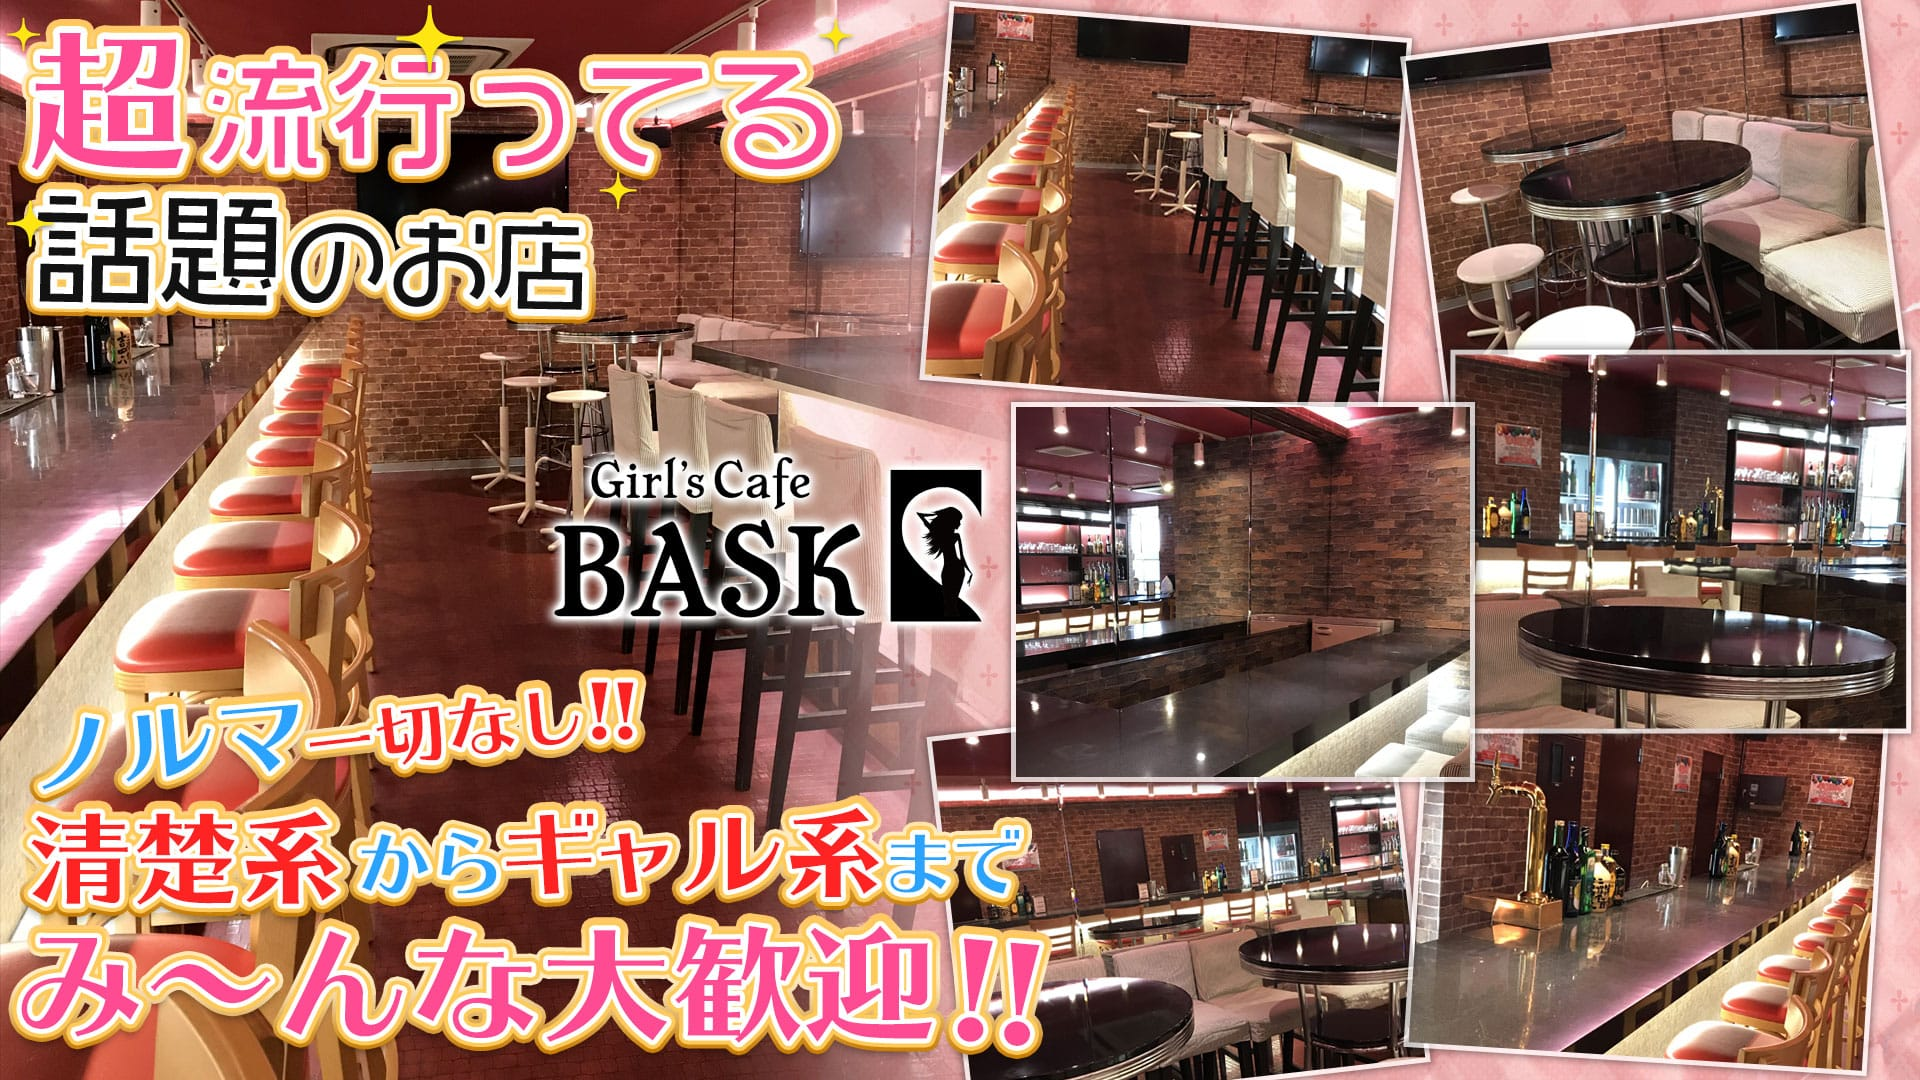 GIRL'S CAFE BASK(バスク) 町田 キャバクラ TOP画像